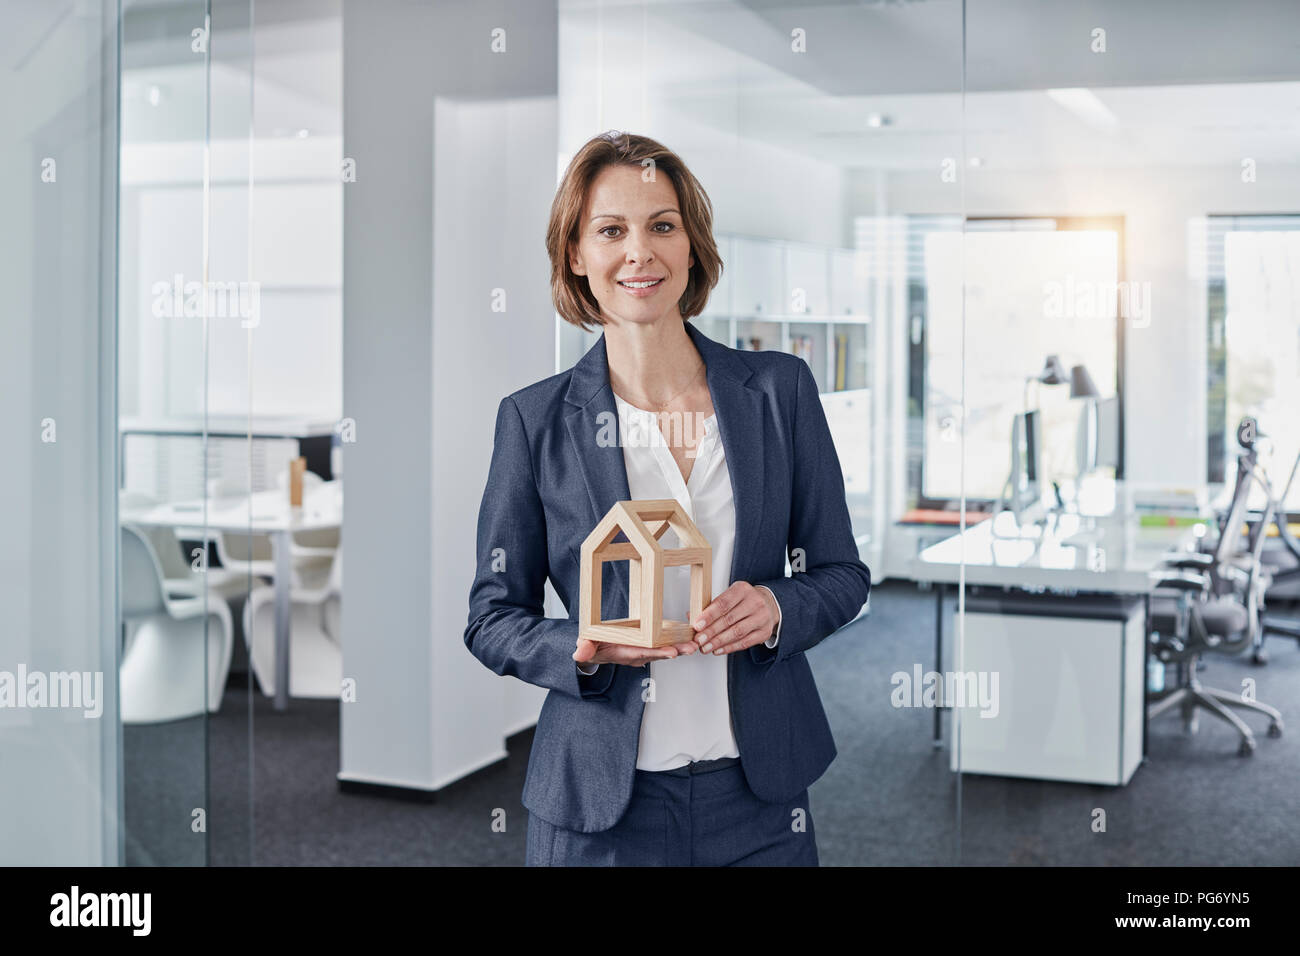 Portrait of smiling businesswoman holding architectural model in office - Stock Image